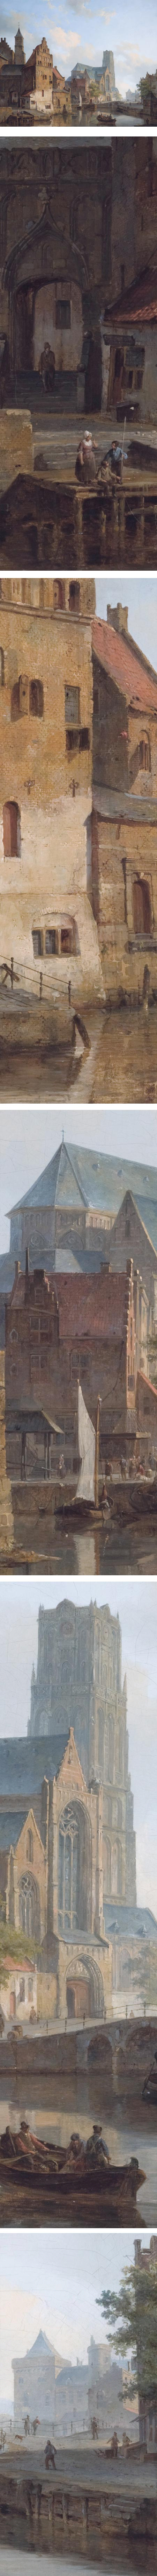 Delftse Vaart and the St Laurens church in Rotterdam,  Cornelis Springer, 19th century Dutch cityscape